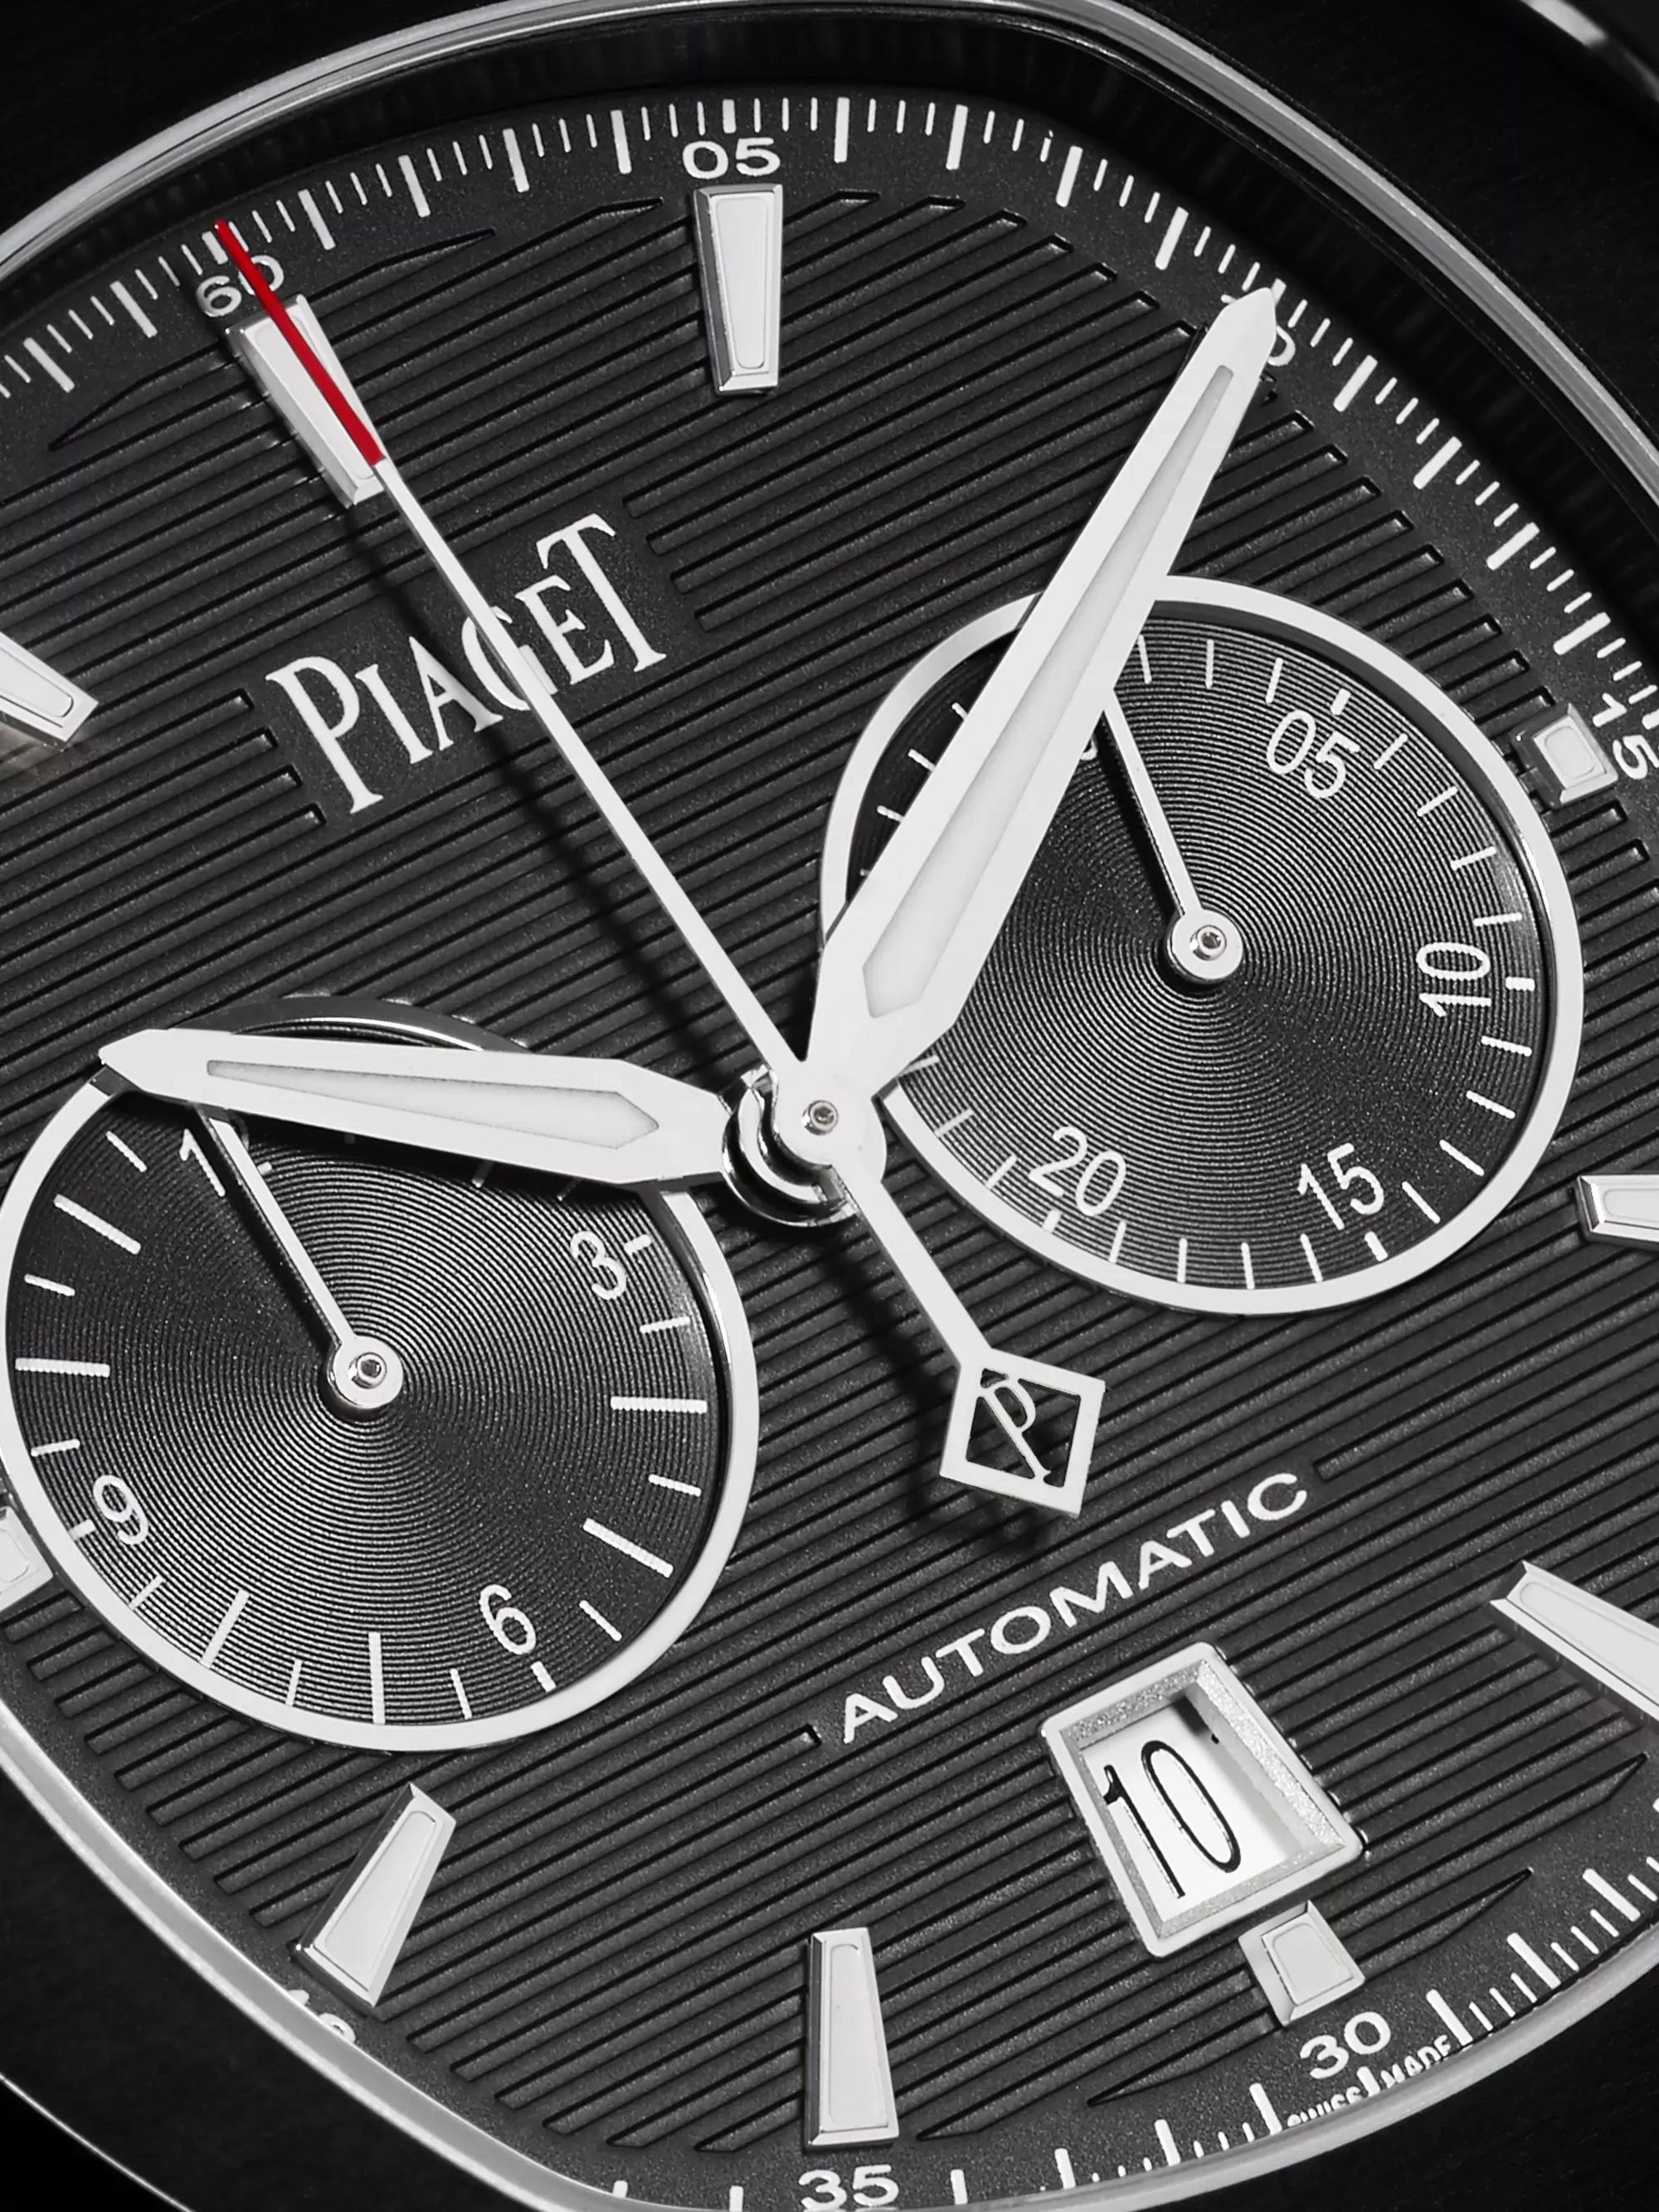 Piaget Limited Edition Polo S Automatic Chronograph 42mm ADLC-Coated Stainless Steel and Leather Watch, Ref. No. G0A42002